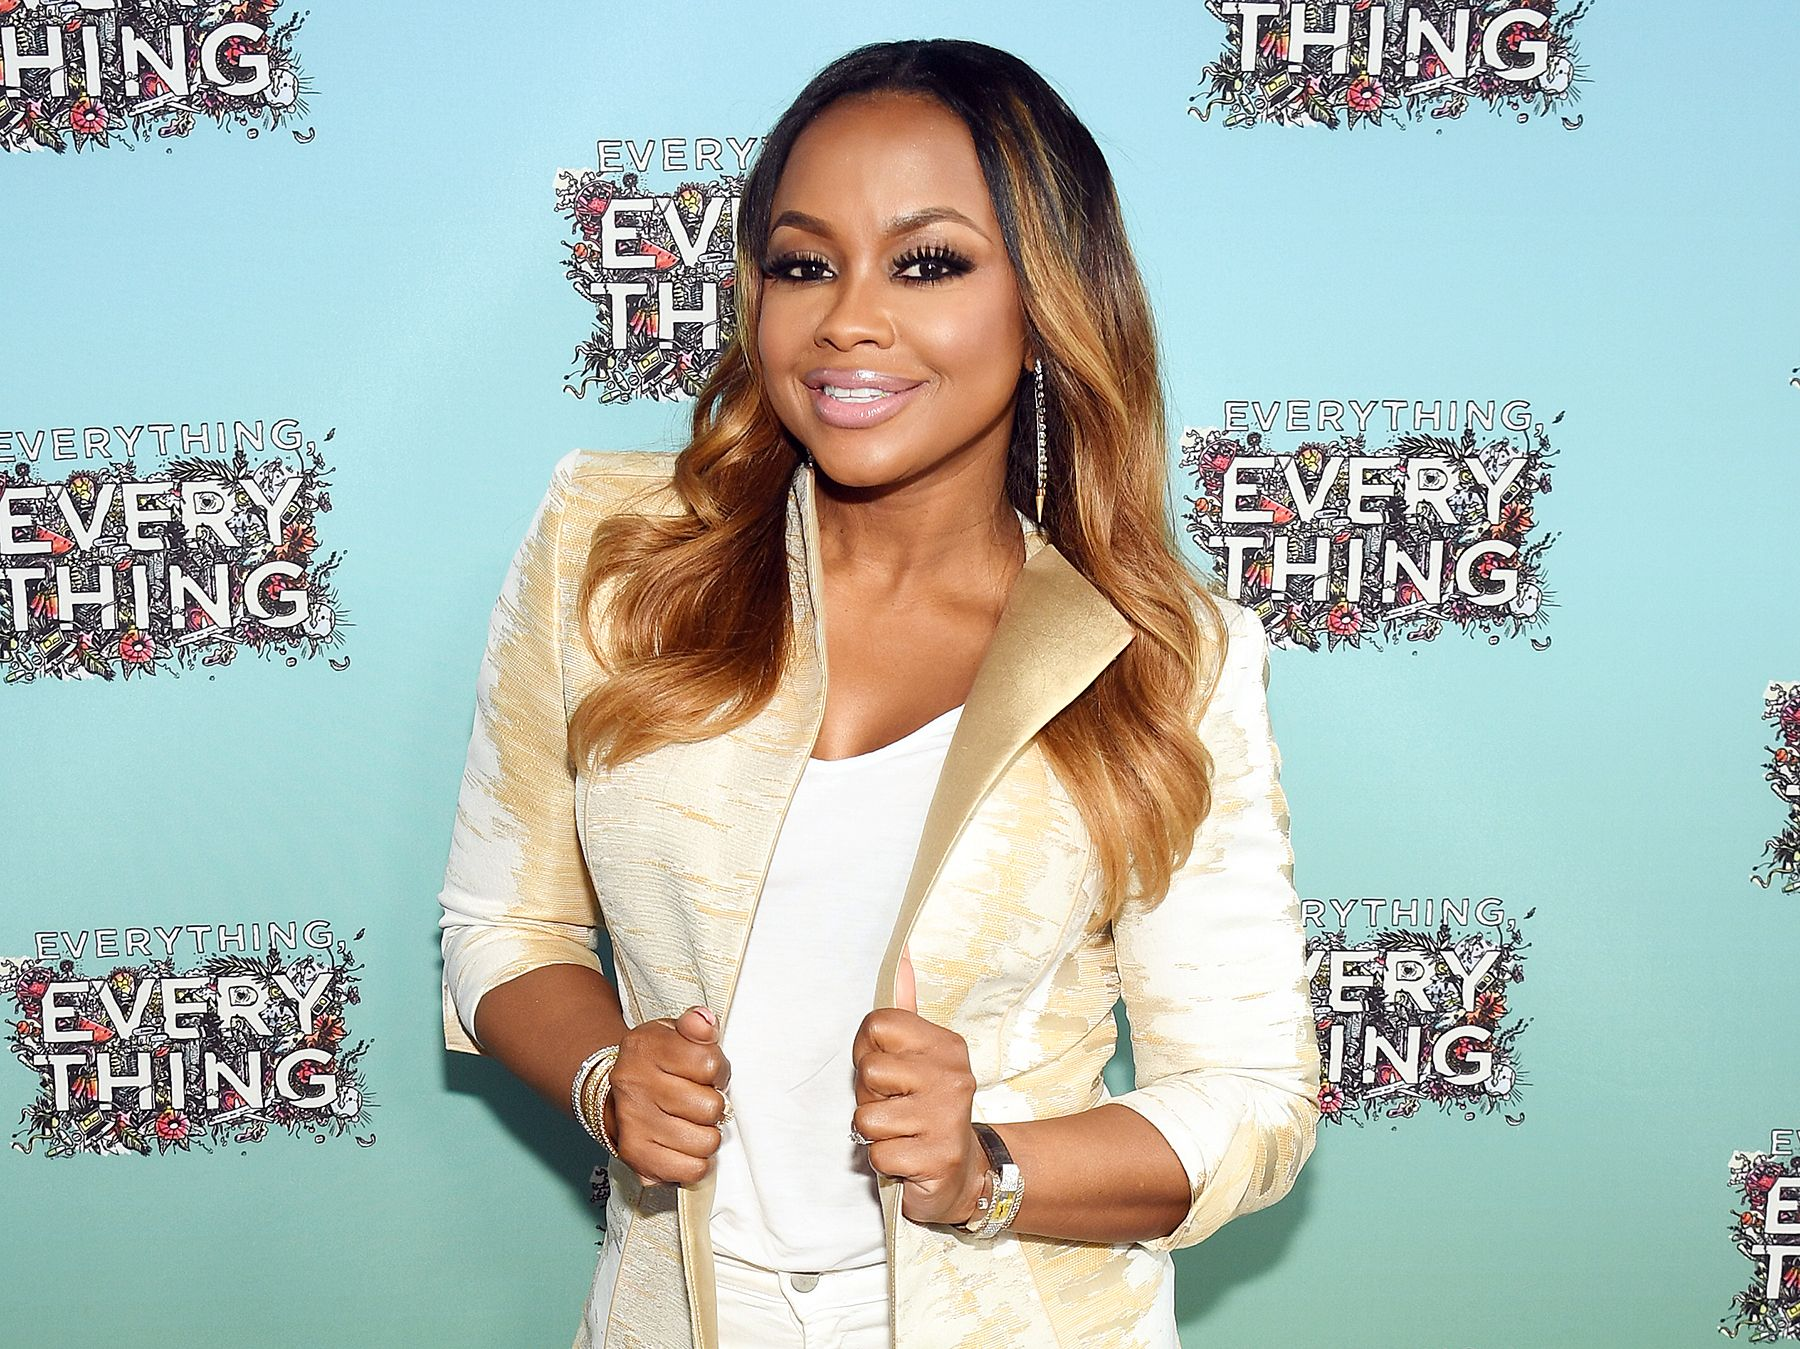 Phaedra Parks Has Some Words Of Wisdom To Say About Christmas Gifts